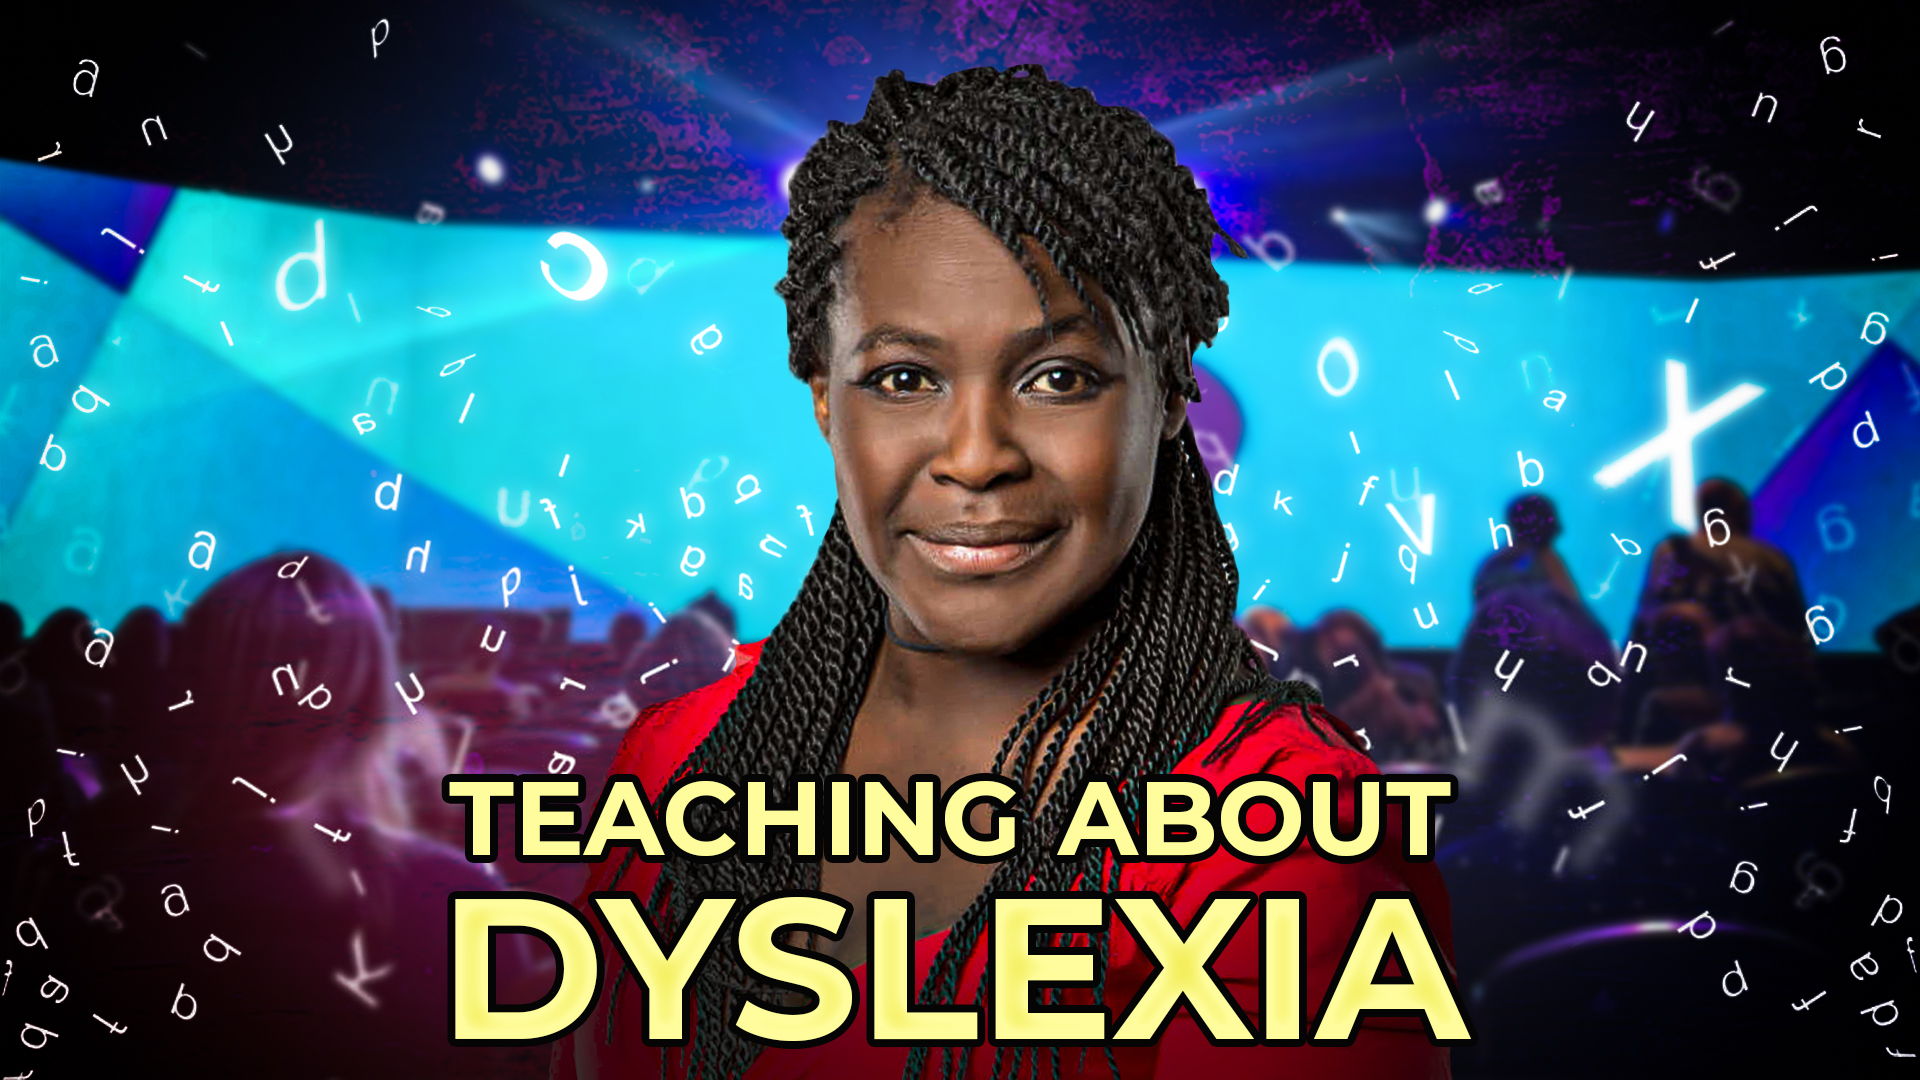 Teaching about dyslexia in school2